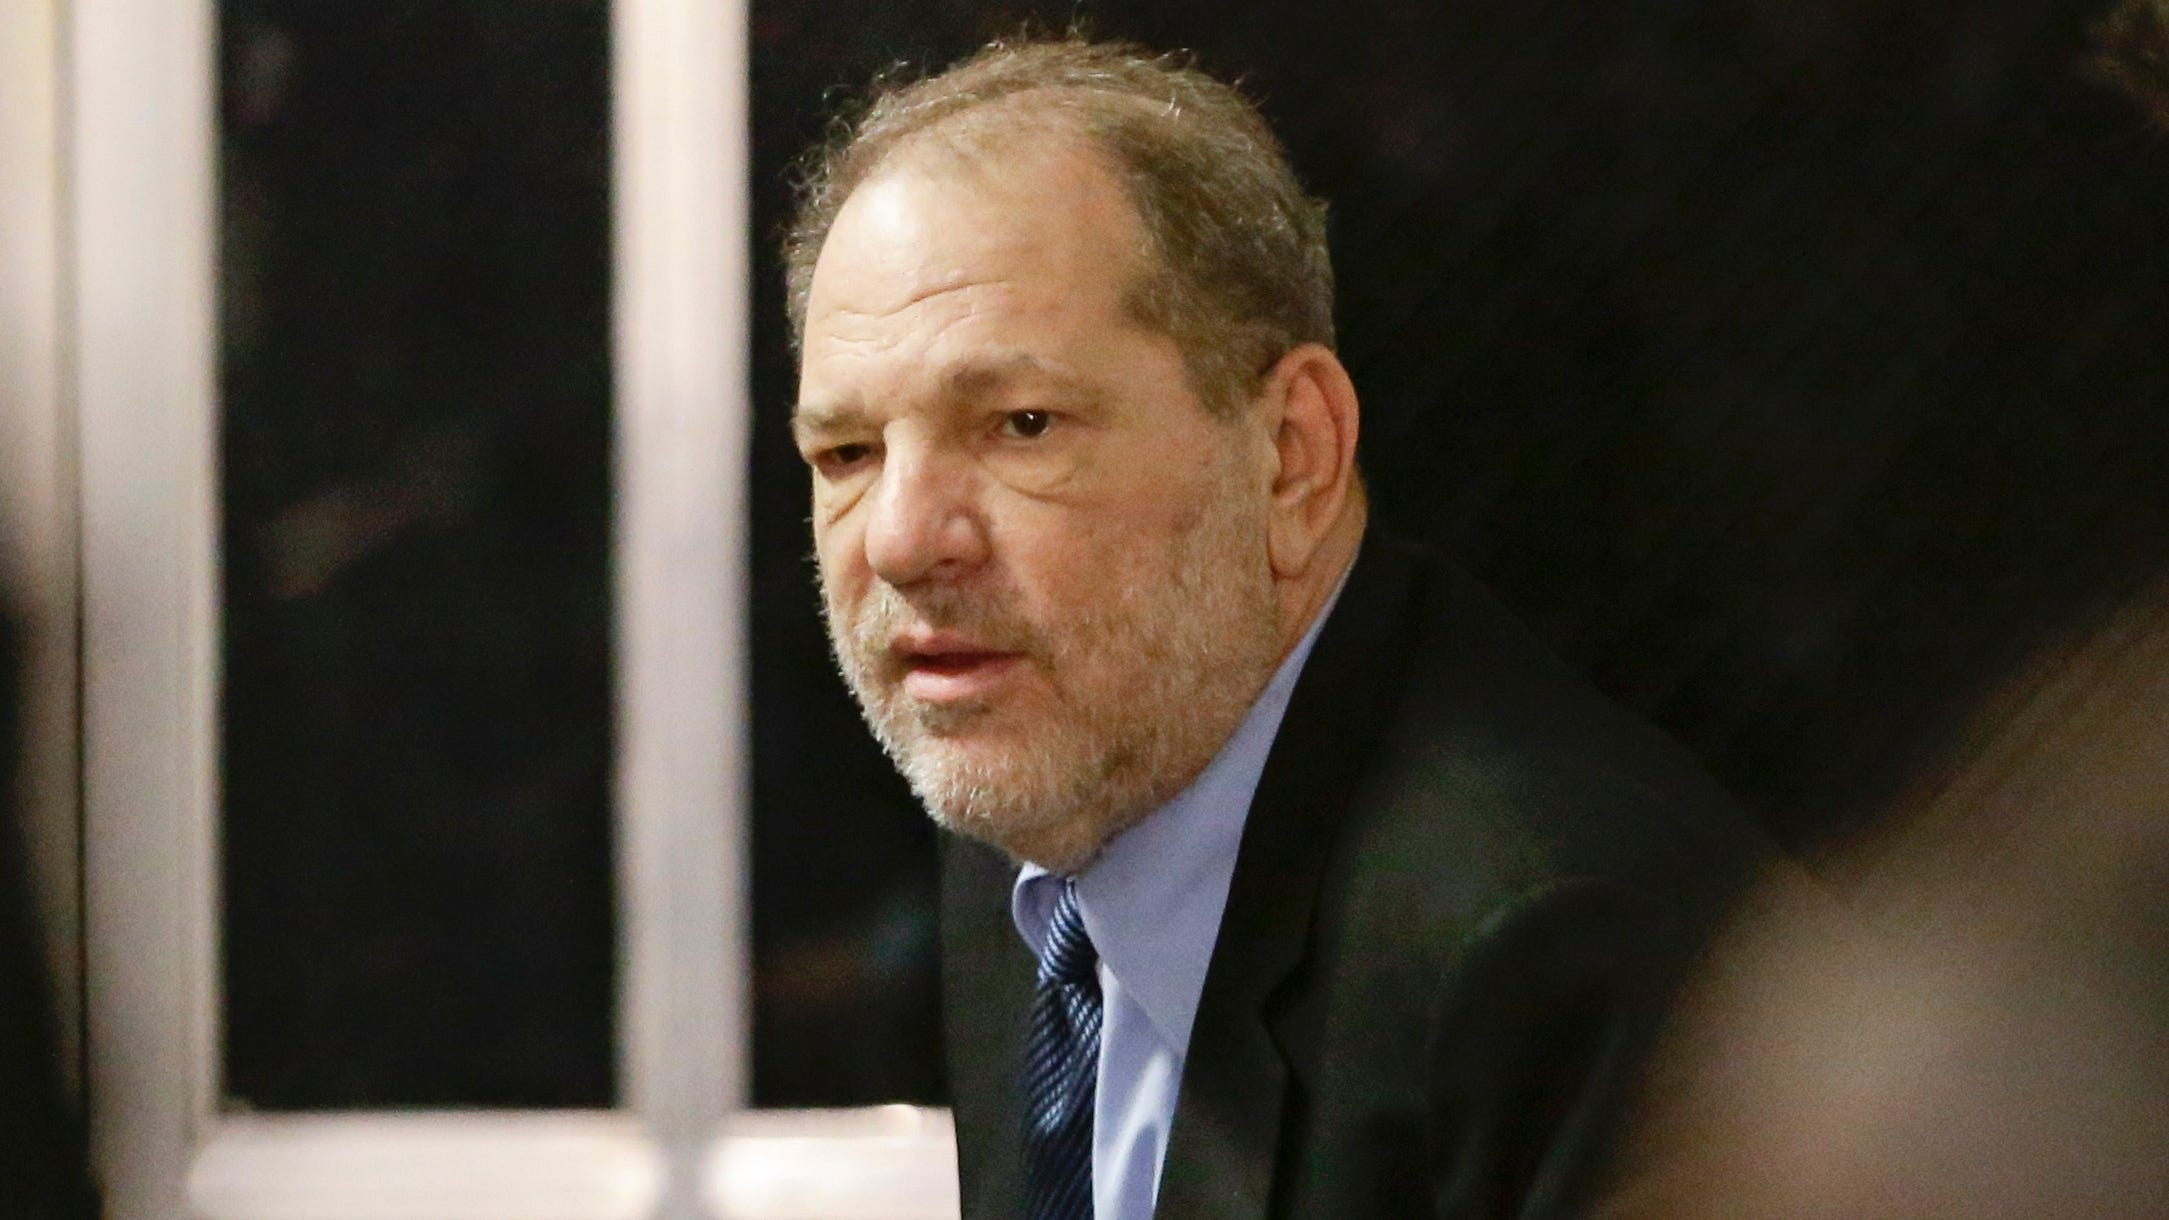 Harvey Weinstein has heart surgery, will be transferred to Rikers, reports say thumbnail